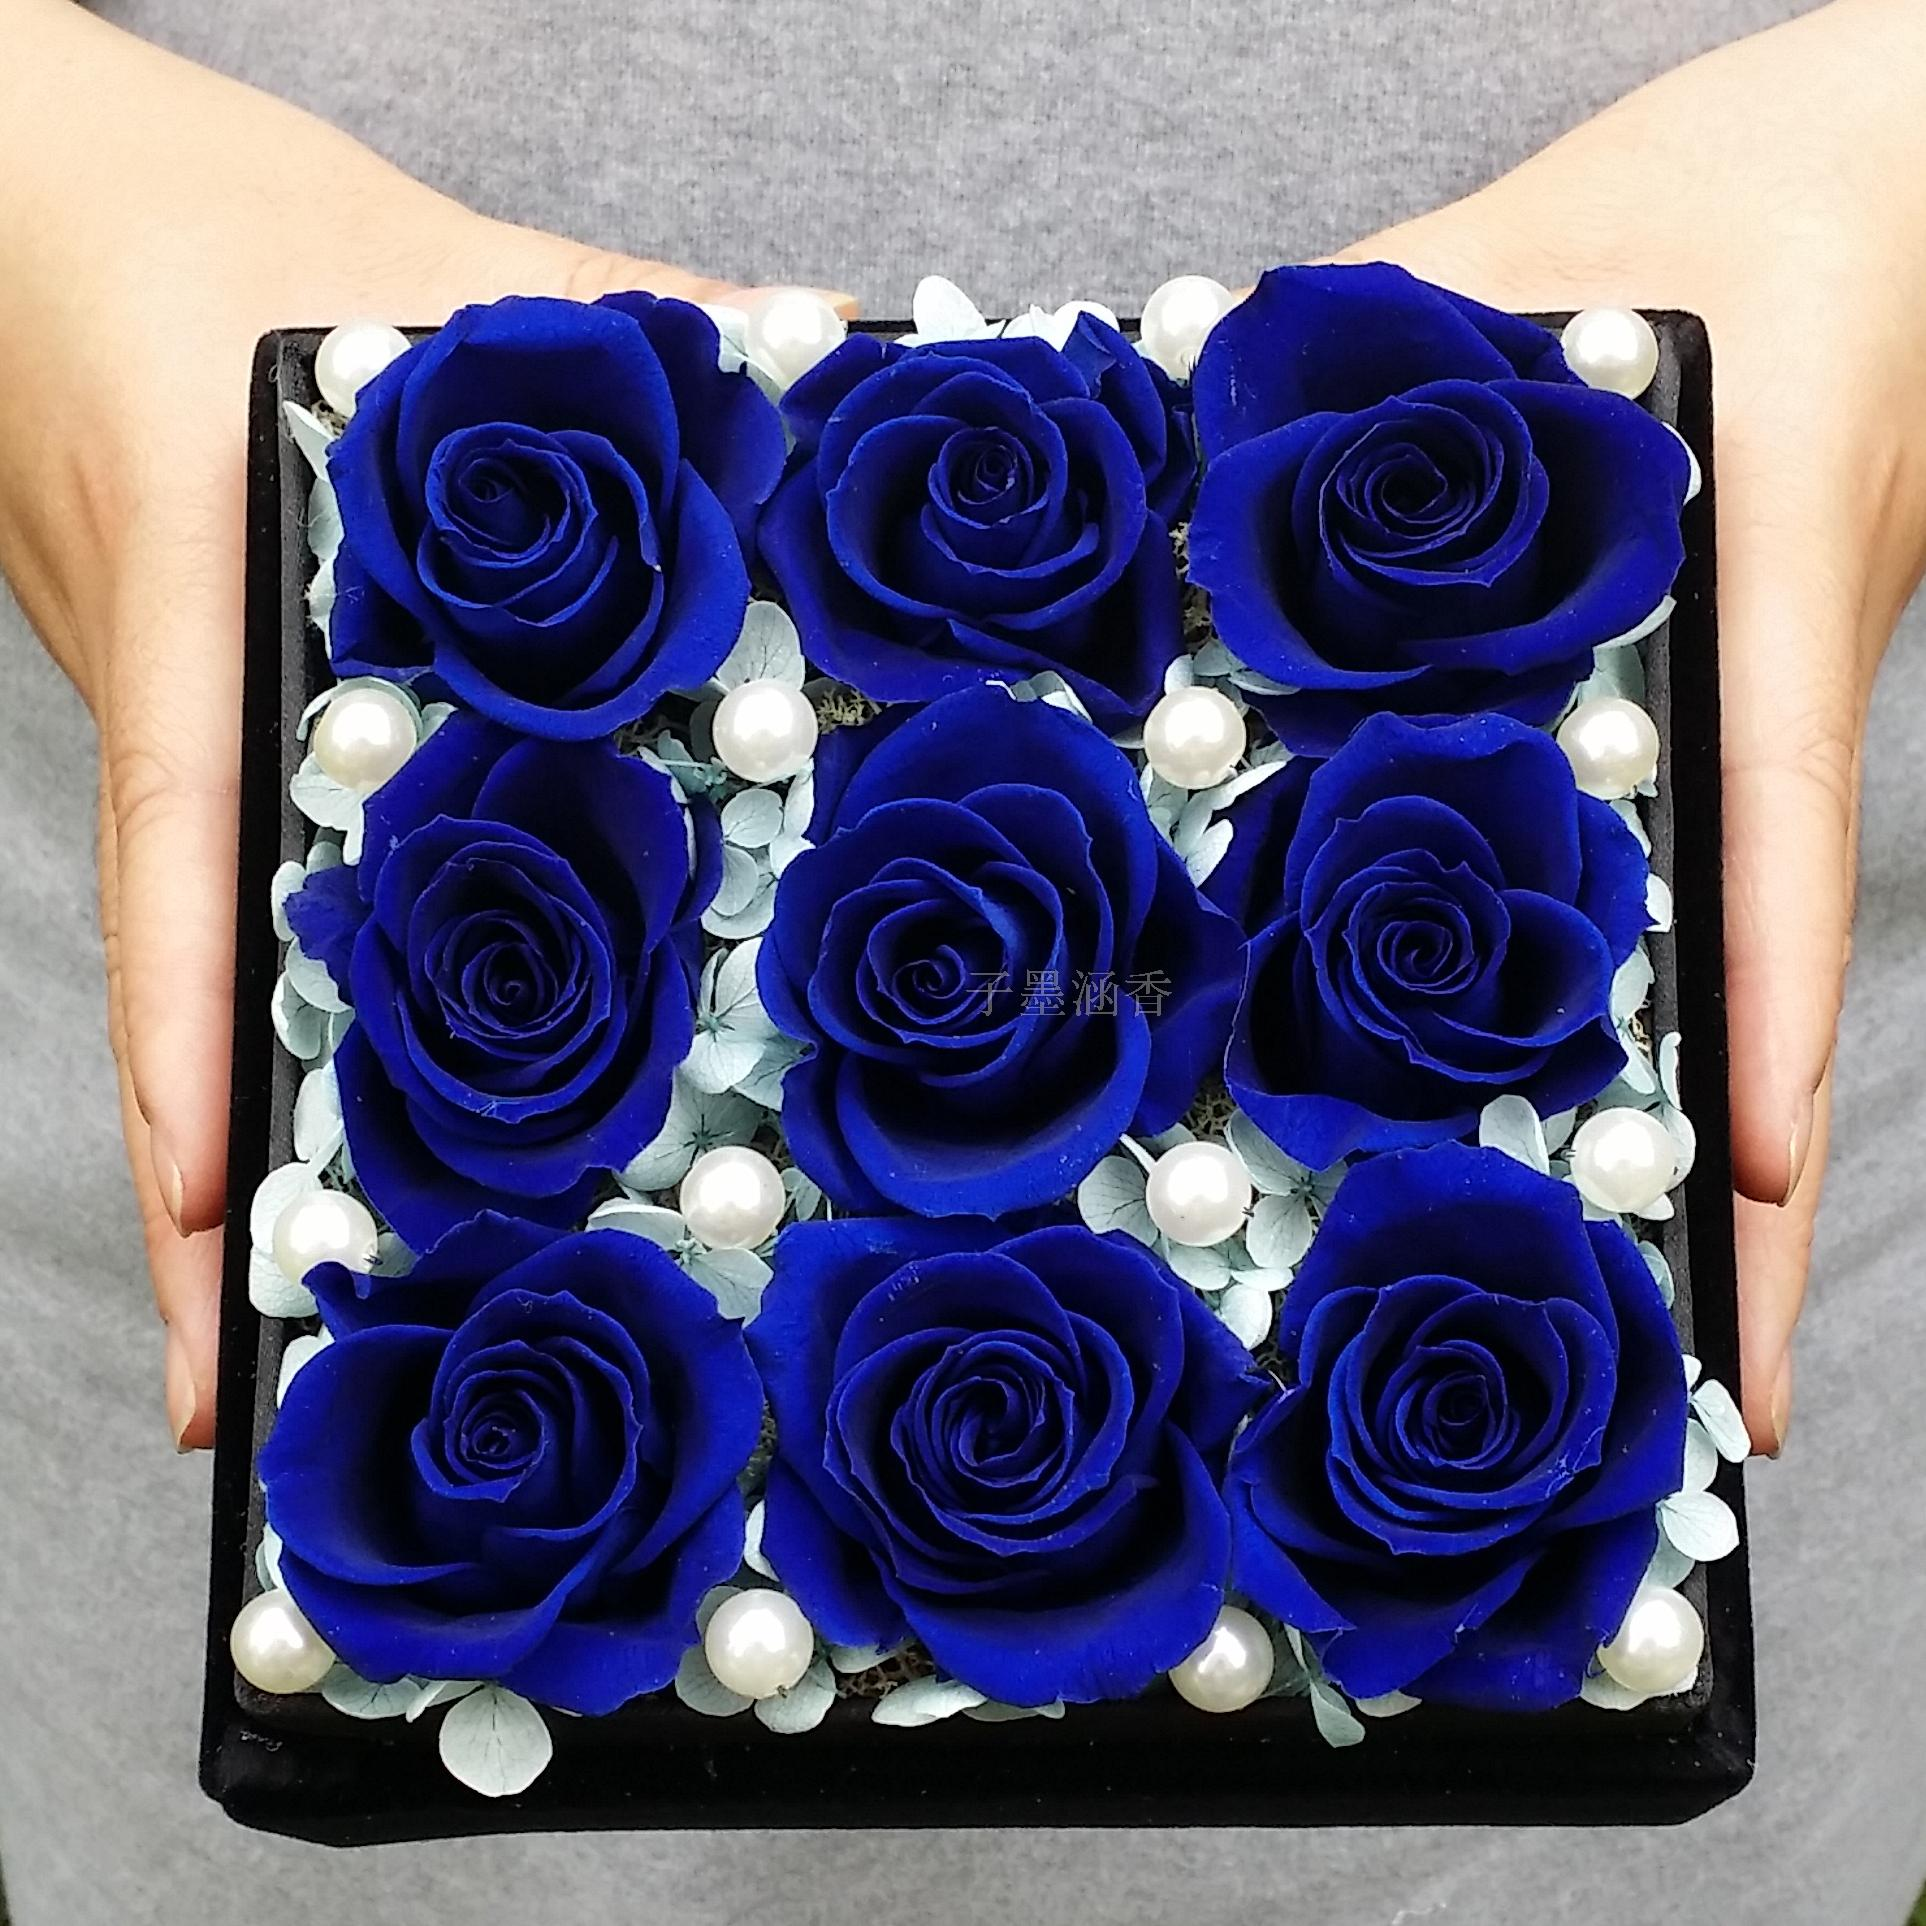 Buy 9 Bluelover Flower Preservation Imports Rose Preserved Flower Flower Boxes Preserved Flower Gift Birthday Bless Courtship Gift Free Shipping In Cheap Price On M Alibaba Com